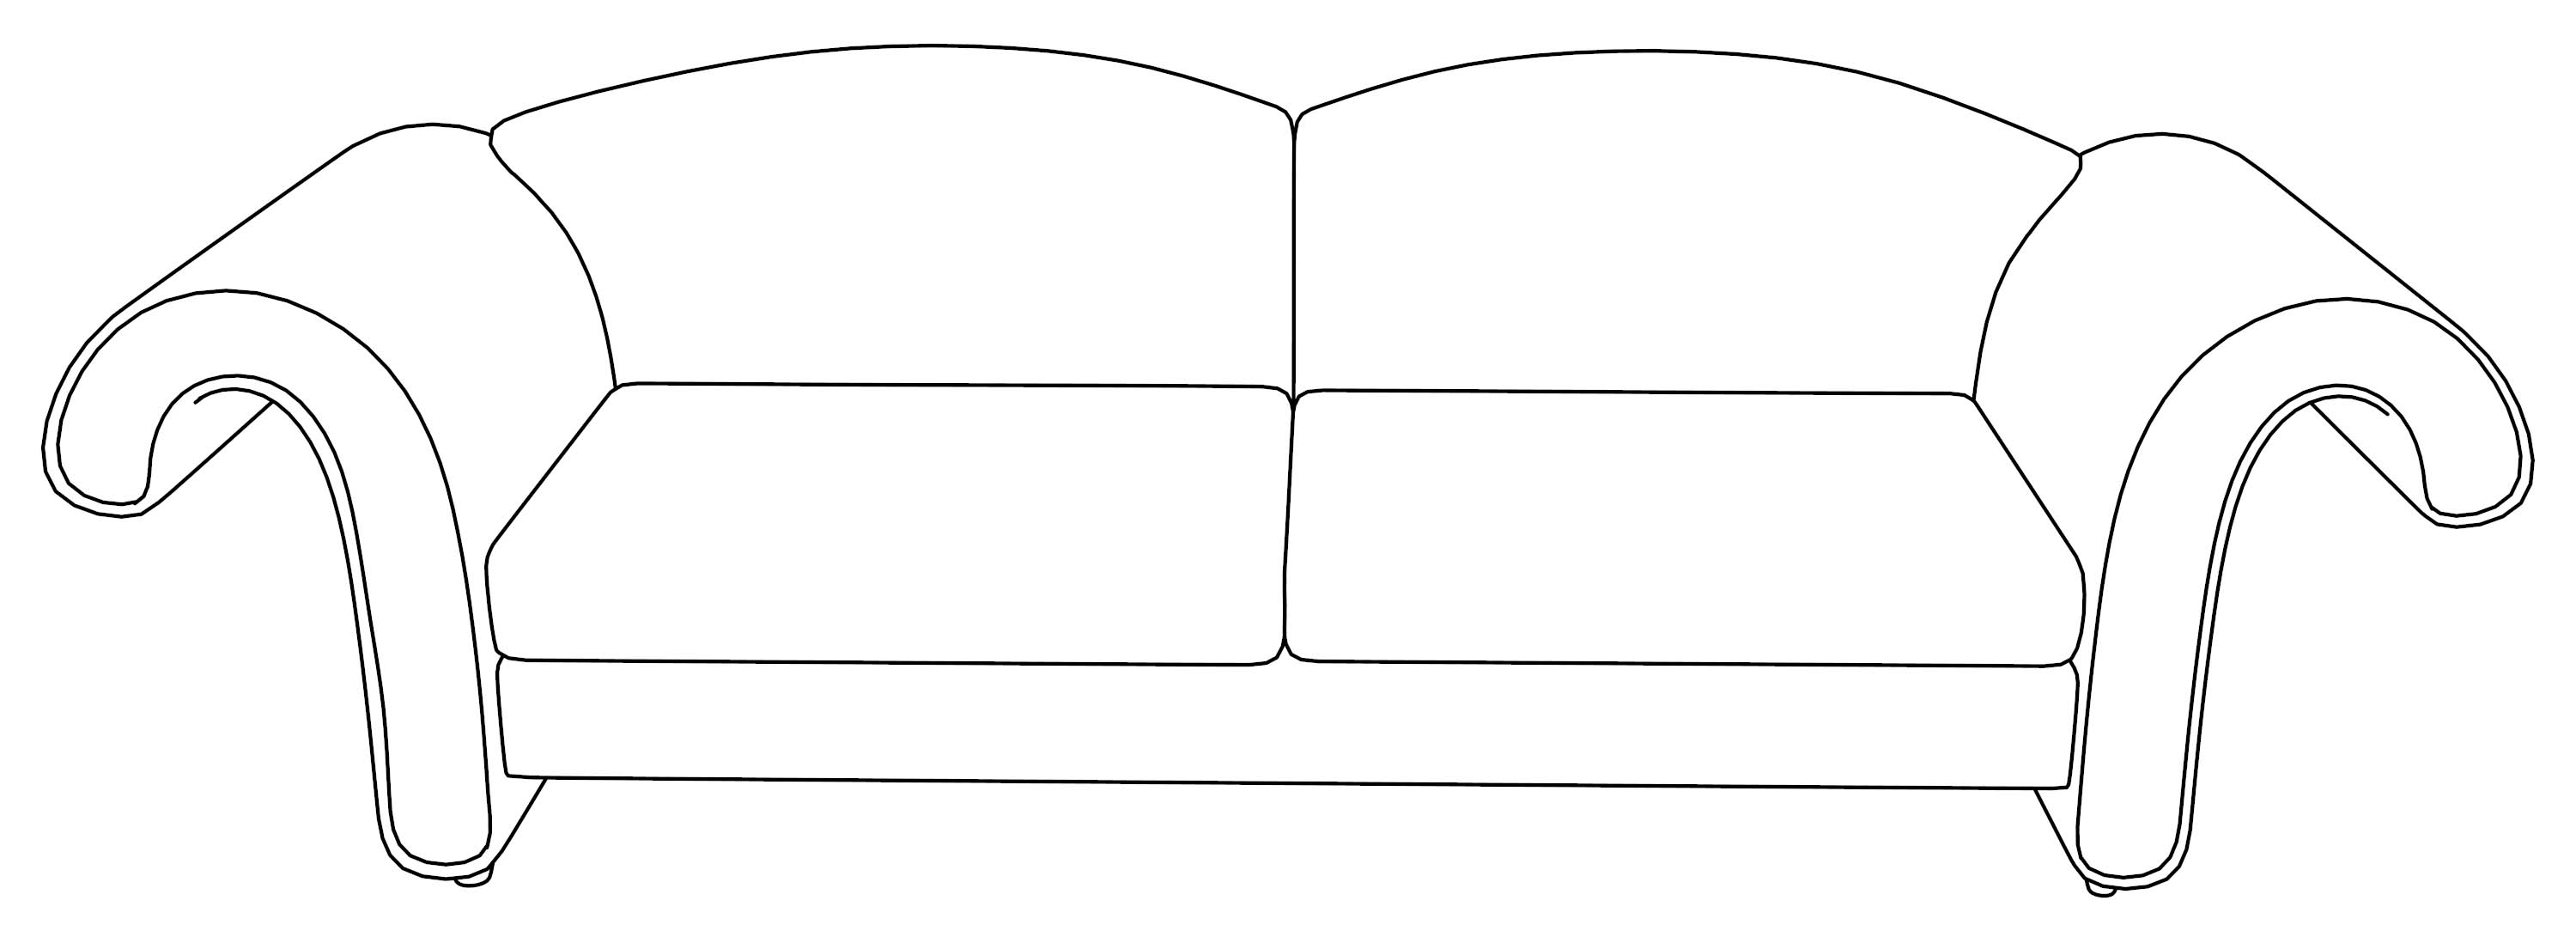 sofa coloring pages - photo#28